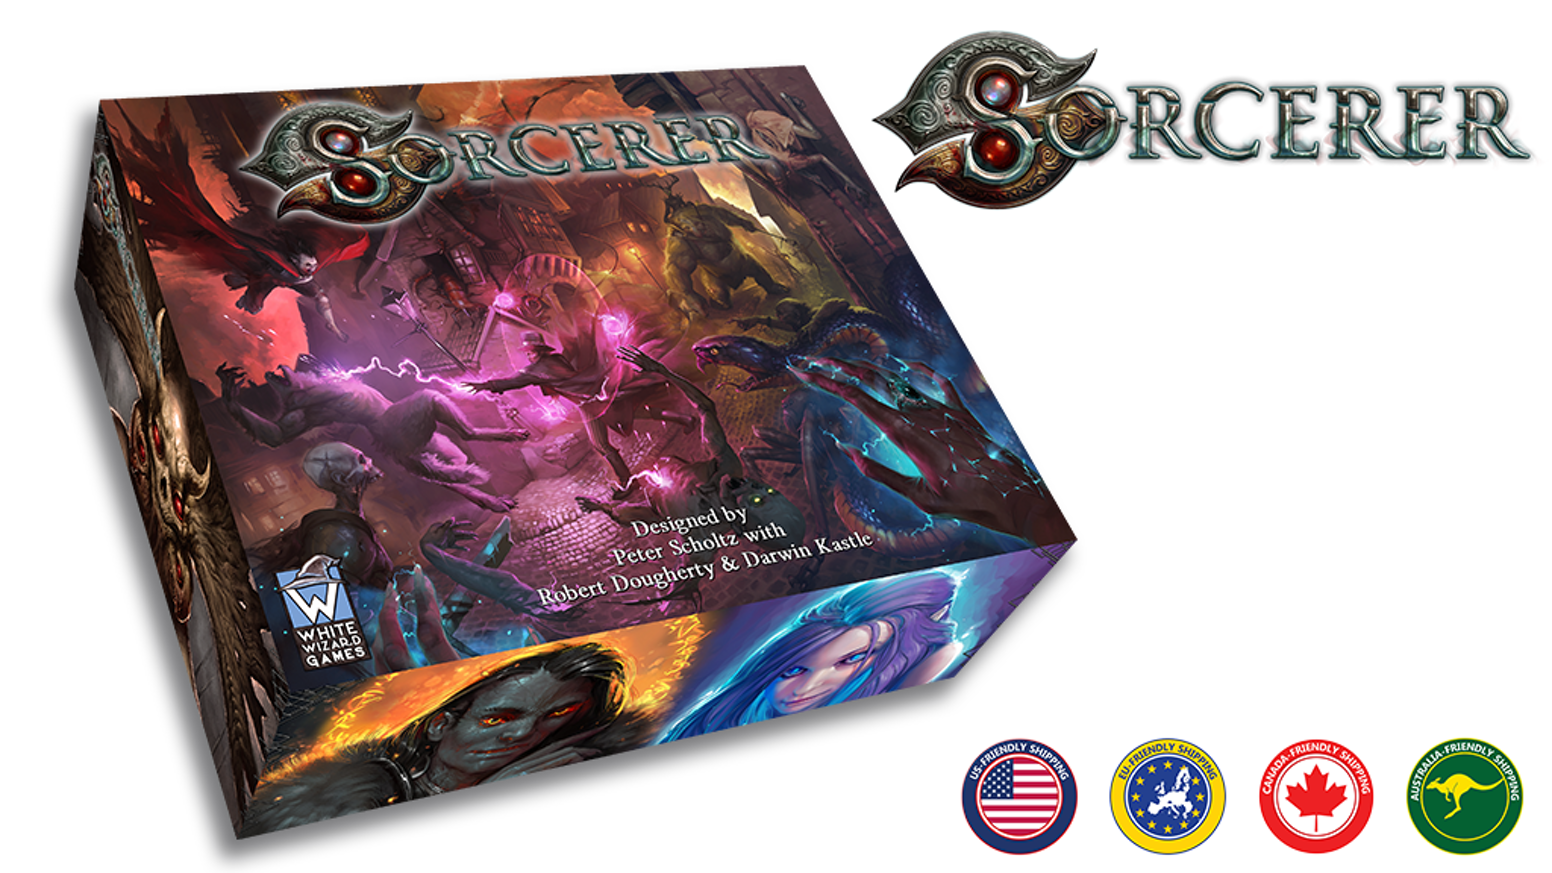 Sorcerer is a dark fantasy game that melds the best elements of a strategy card game with a tactical board game.